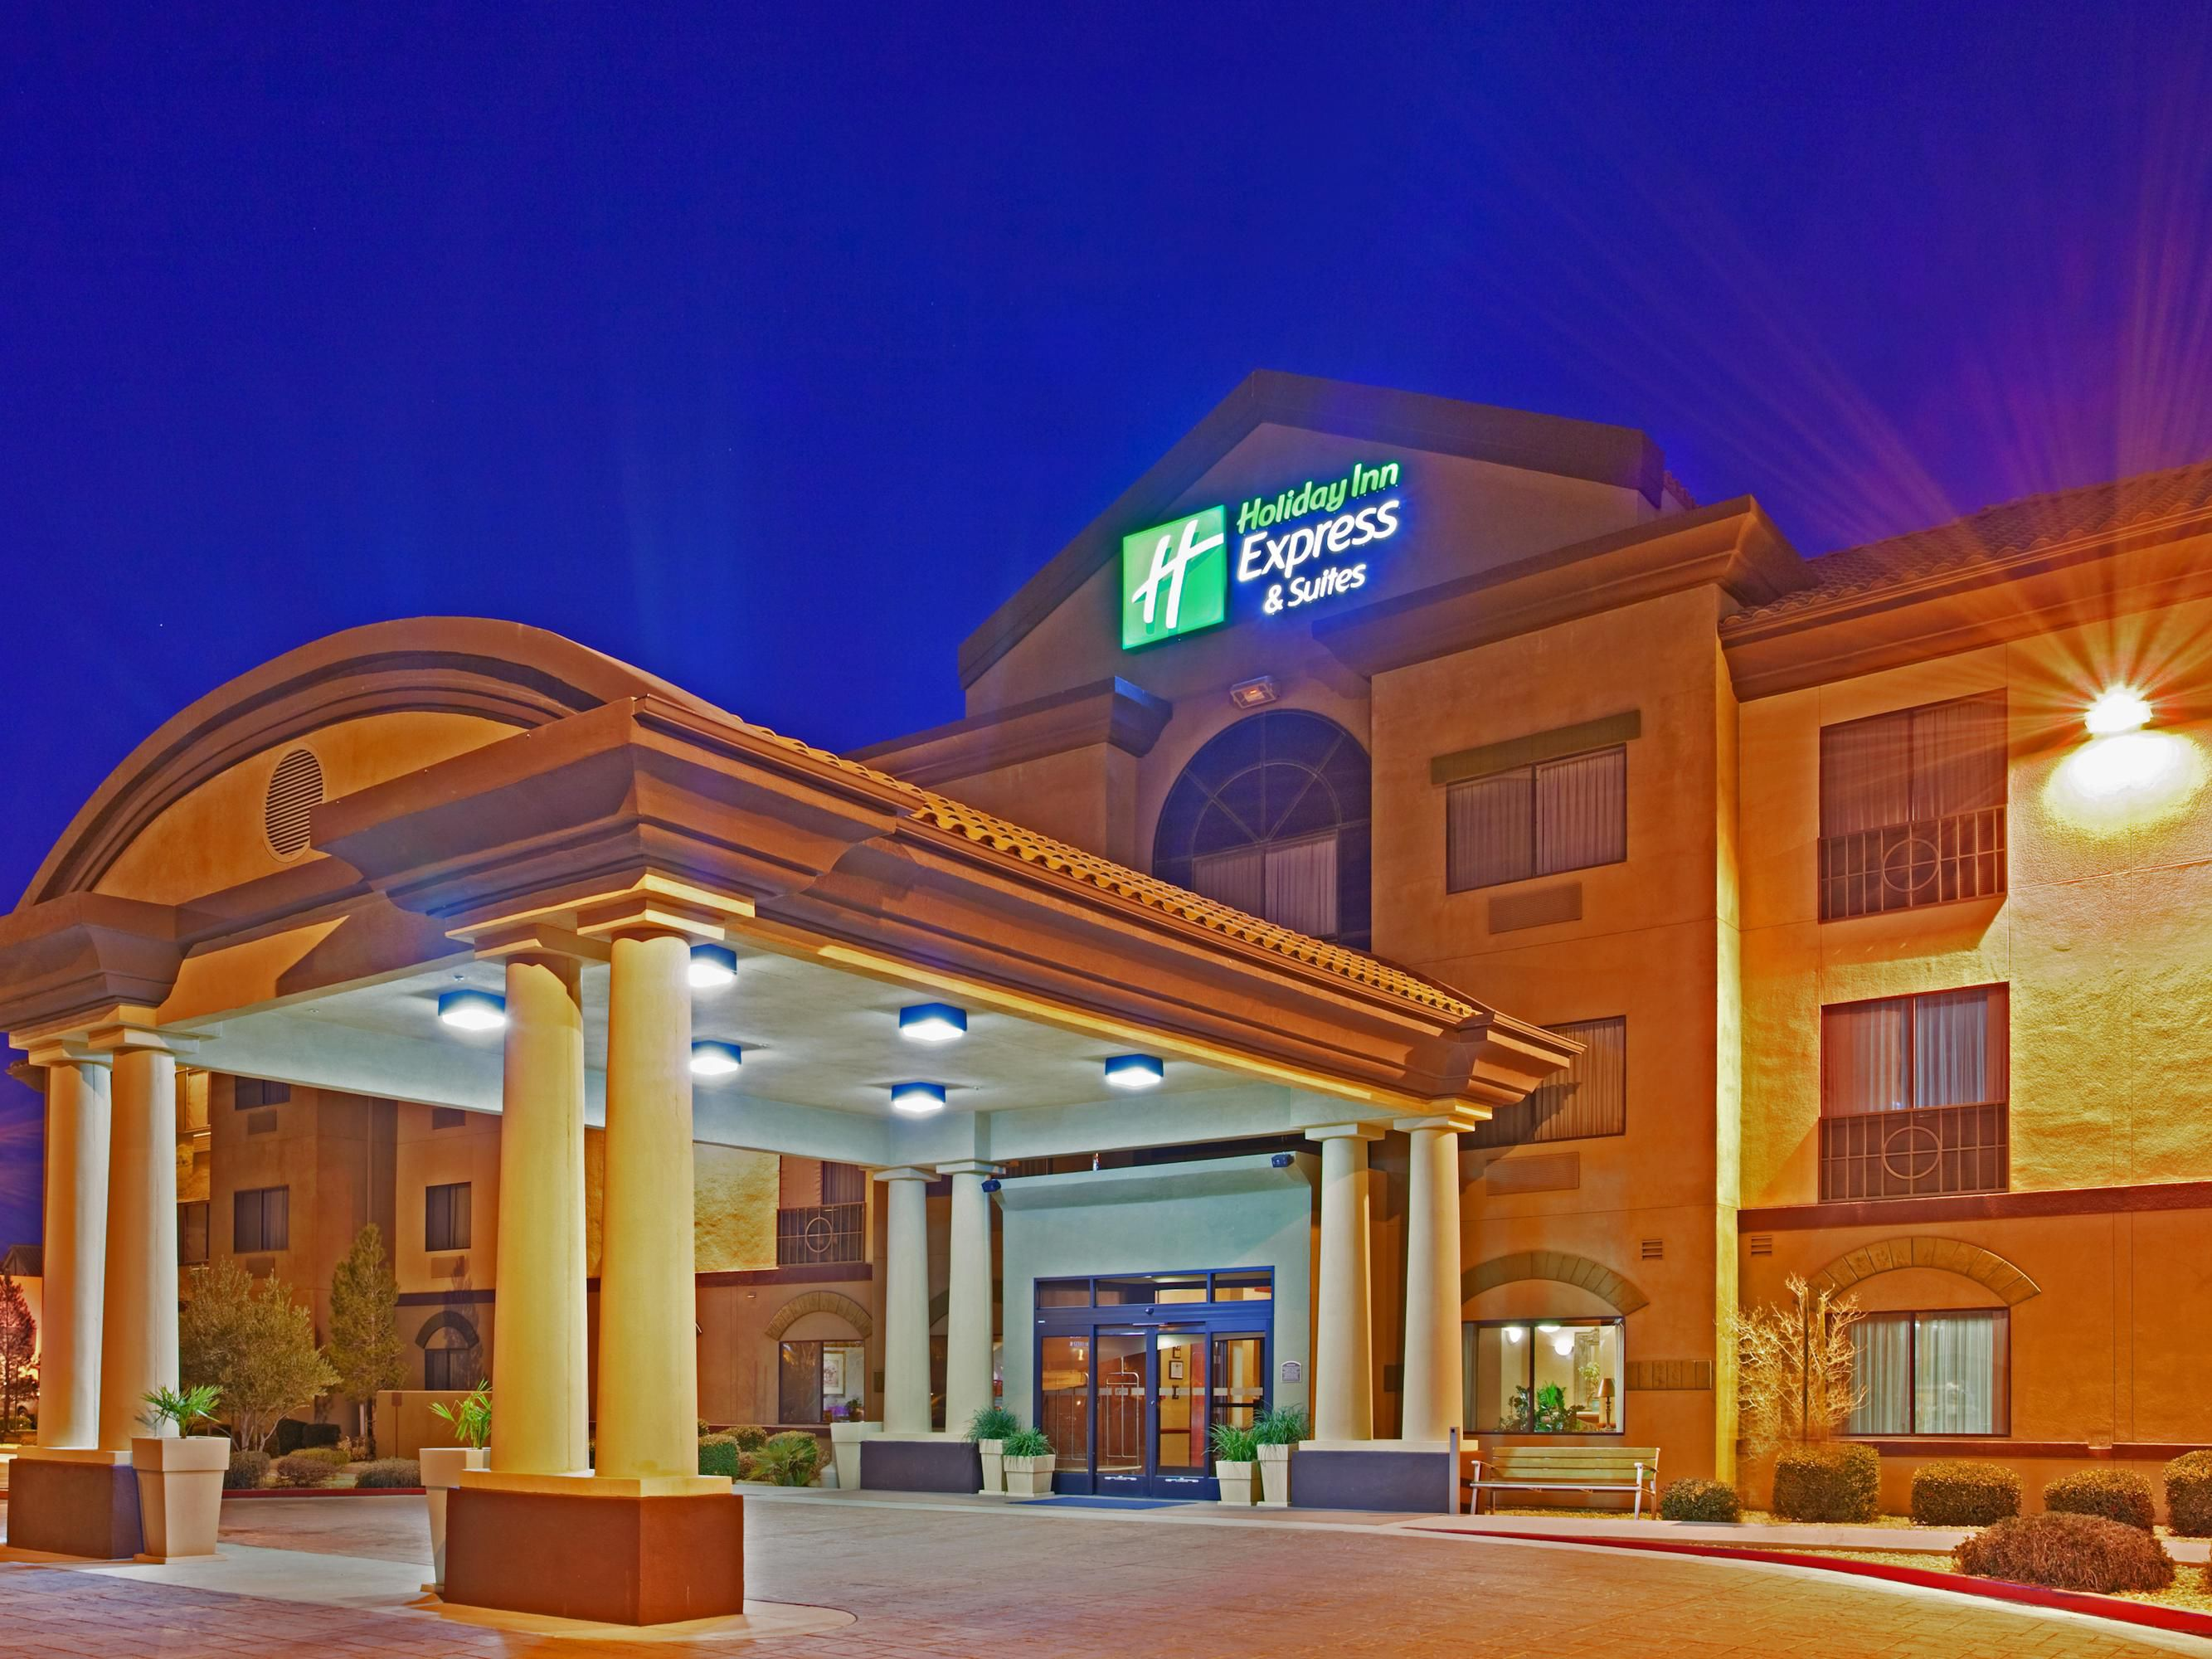 Holiday Inn Express & Suites Outlet Center Front Entrance 3